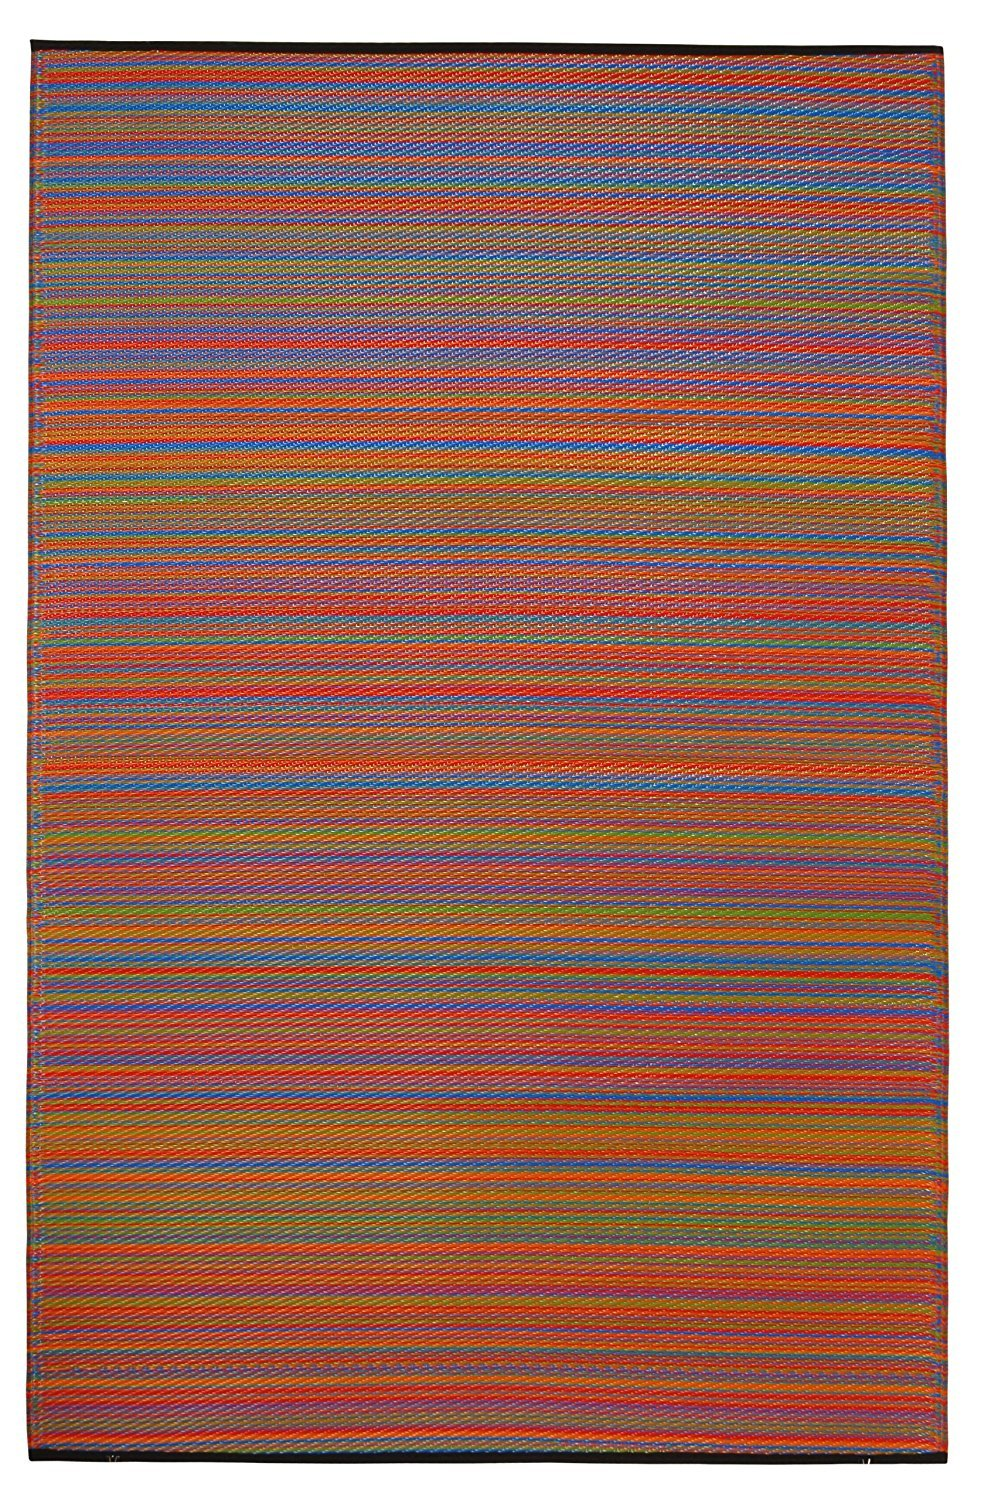 Fab Habitat Reversible Rugs | Indoor or Outdoor Use | Stain Resistant, Easy to Clean Weather Resistant Floor Mats | Cancun - Multicolor, (8' x 10')